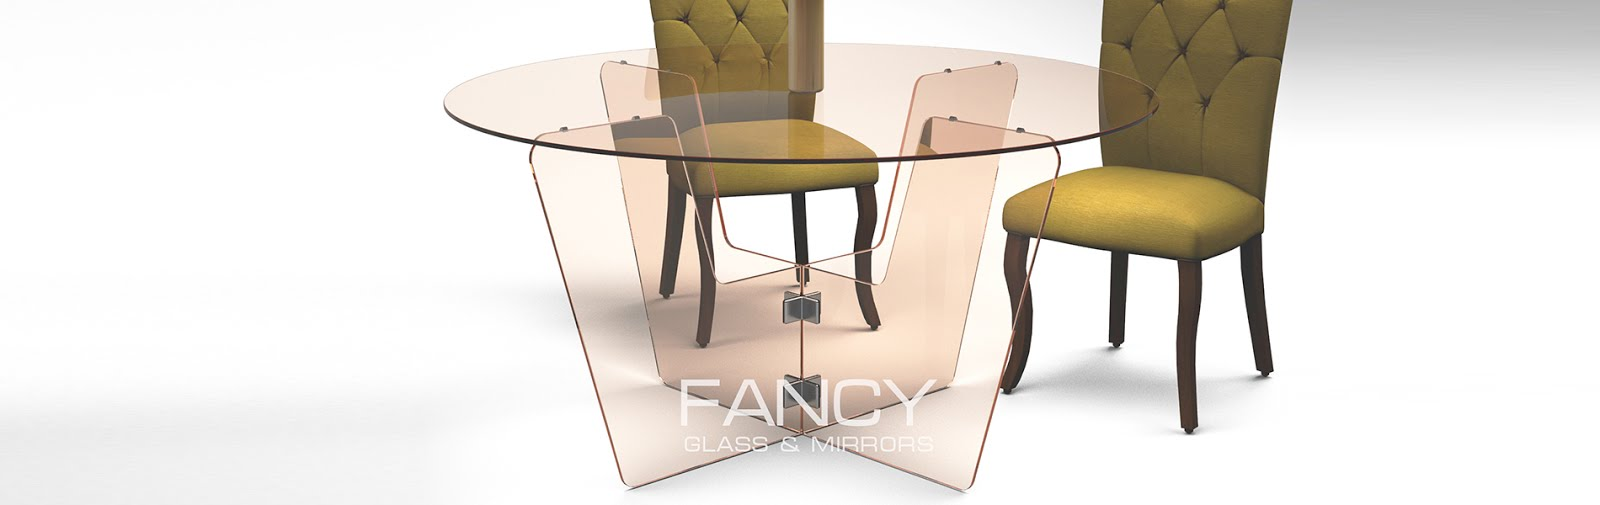 Rounded dinig table